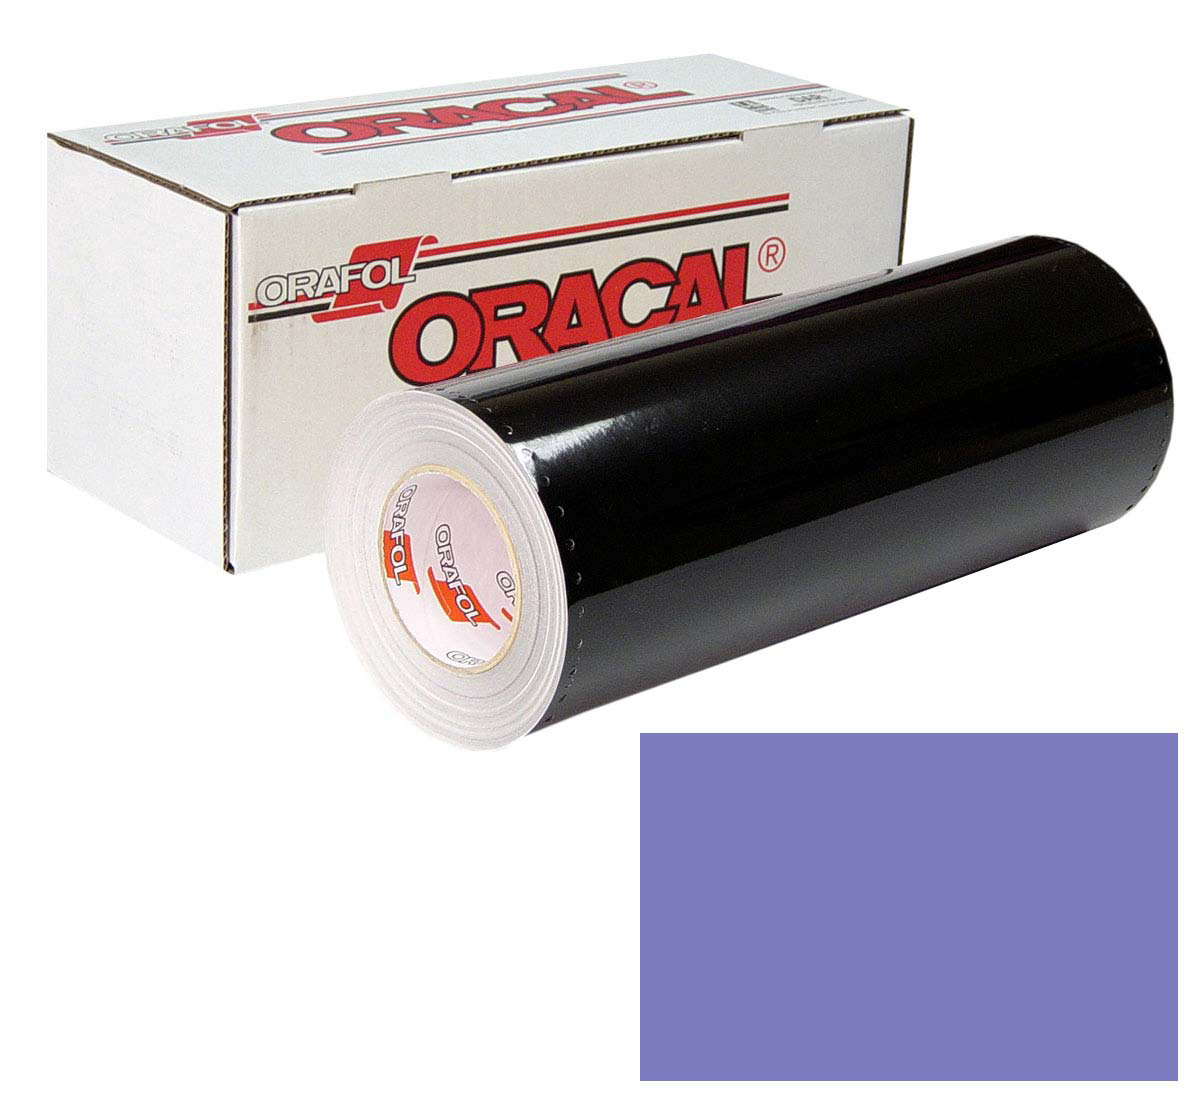 ORACAL 641 Unp 24in X 50yd 043 Lavender